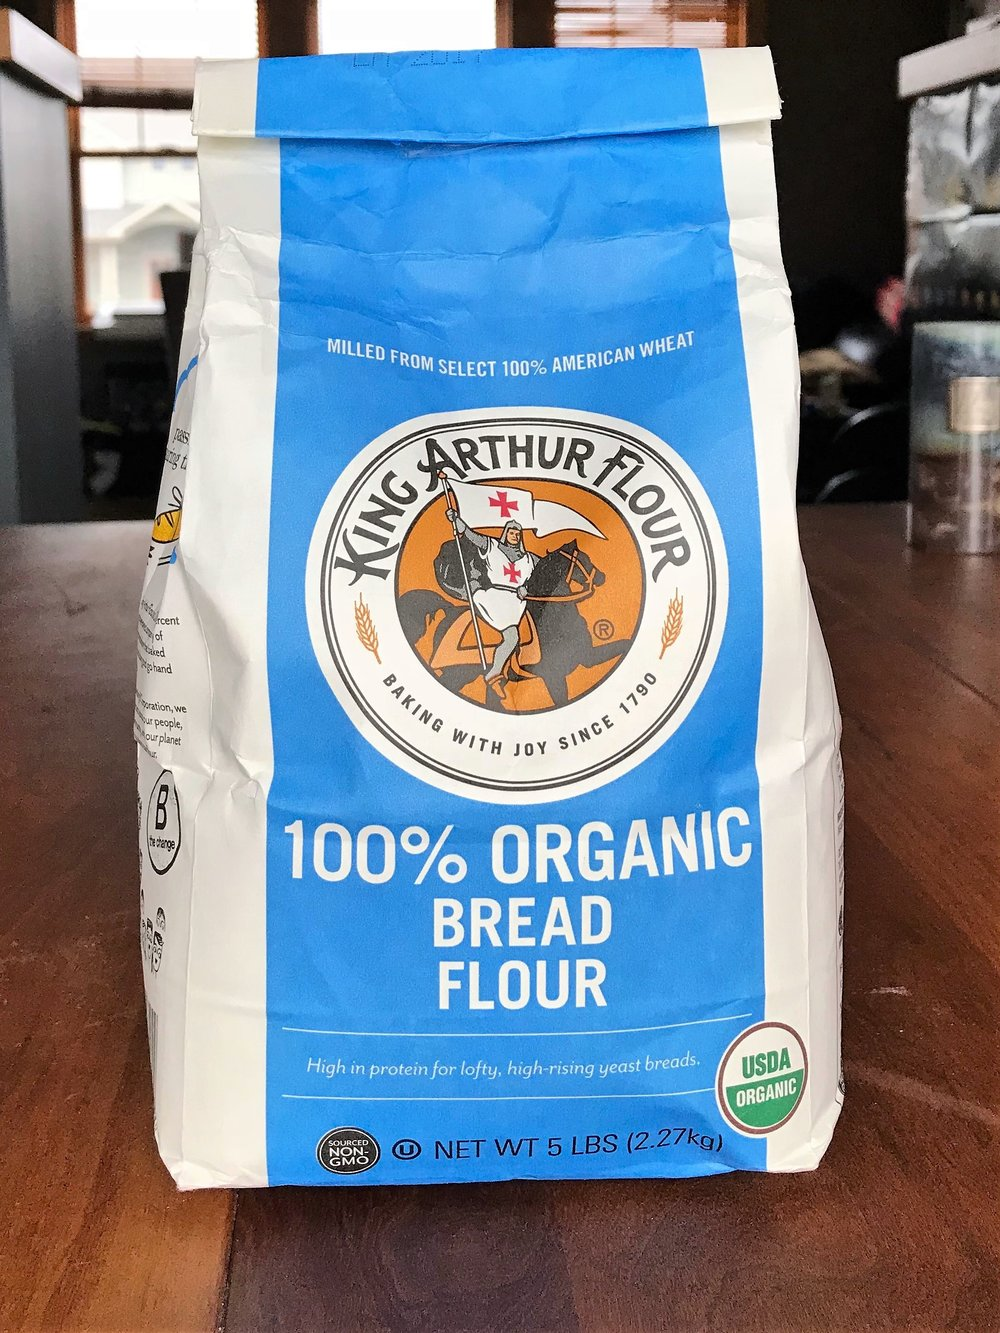 Ashley's favorite flour for sourdough - I'll often use this flour in place of all purpose flour however since this is